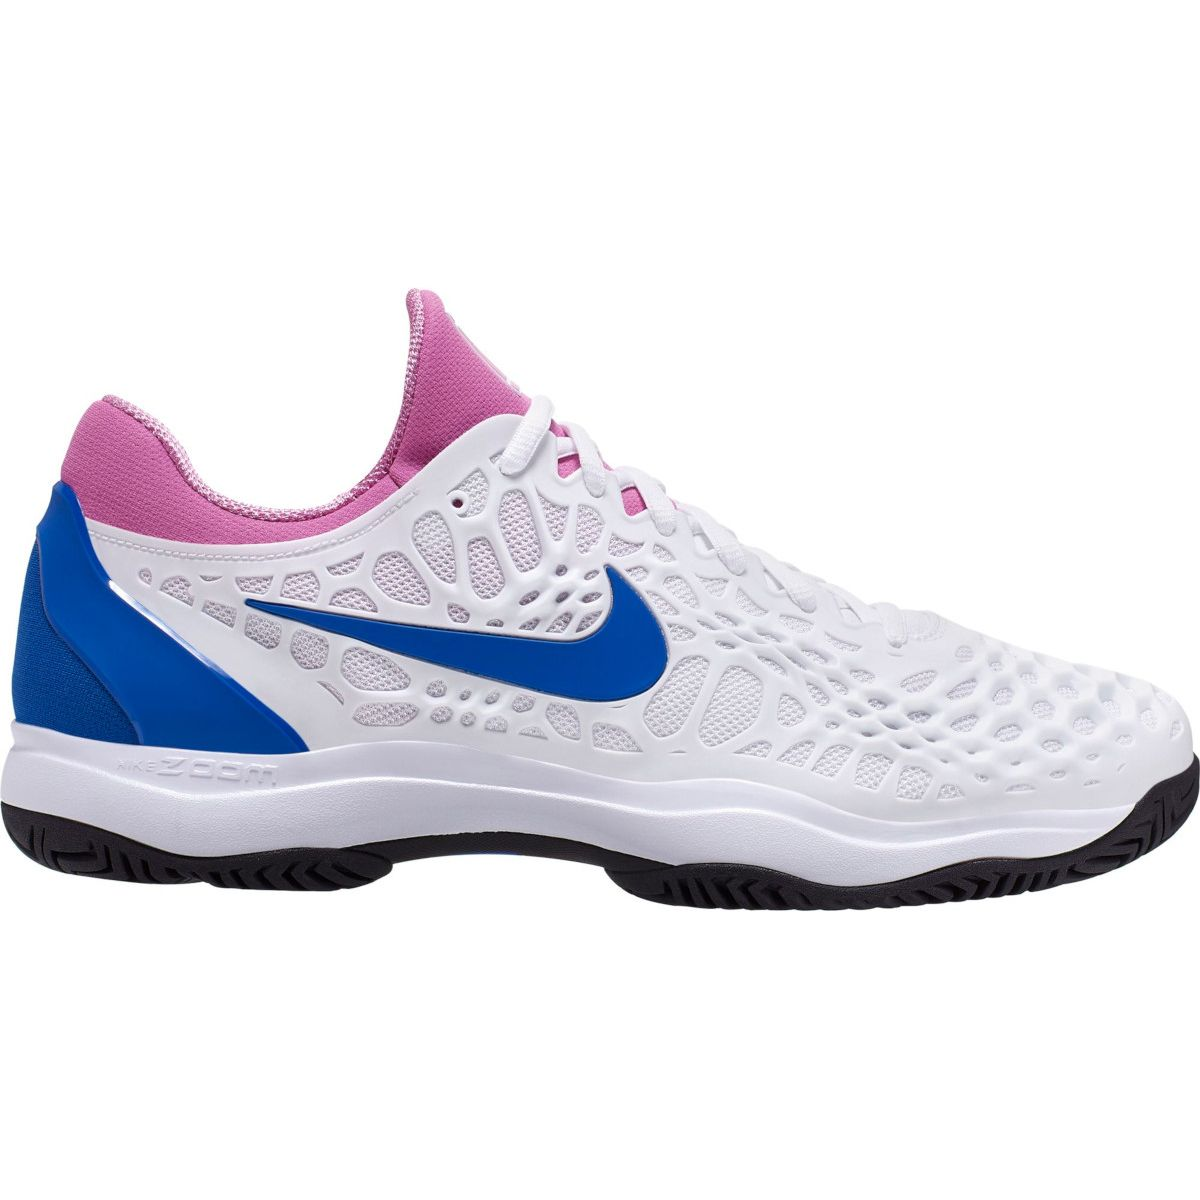 Nike Zoom Cage 3 Hard Court Men's Tennis Shoes